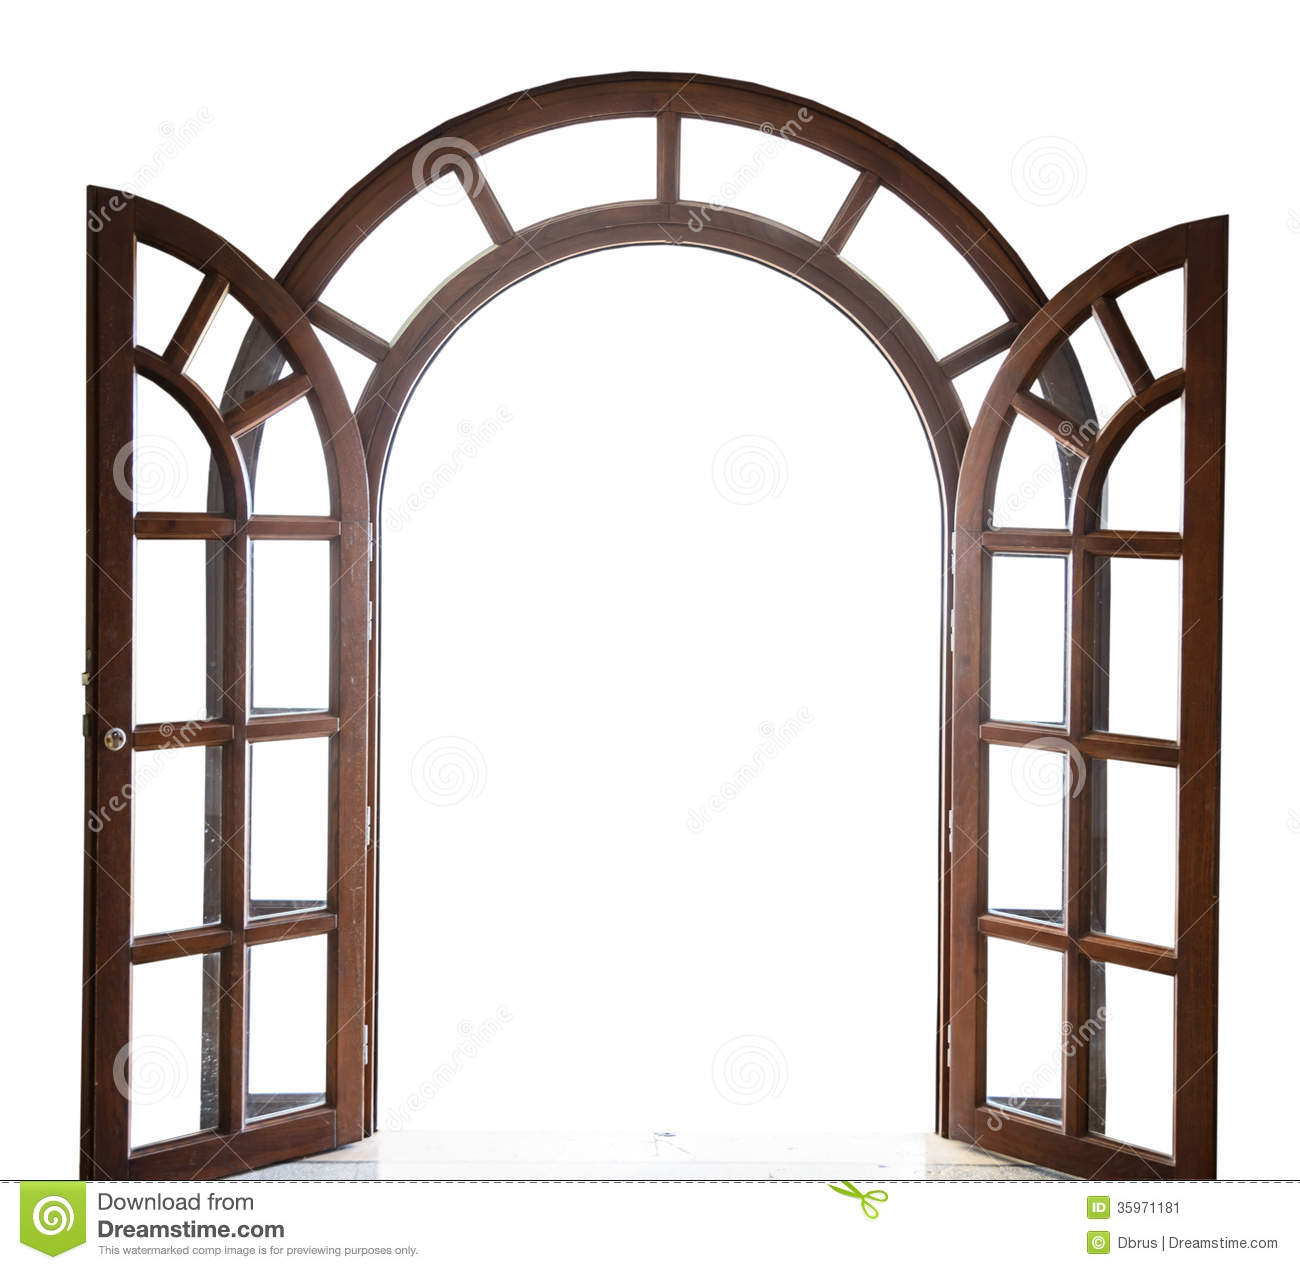 Open arched wooden door on a white background stock image image.